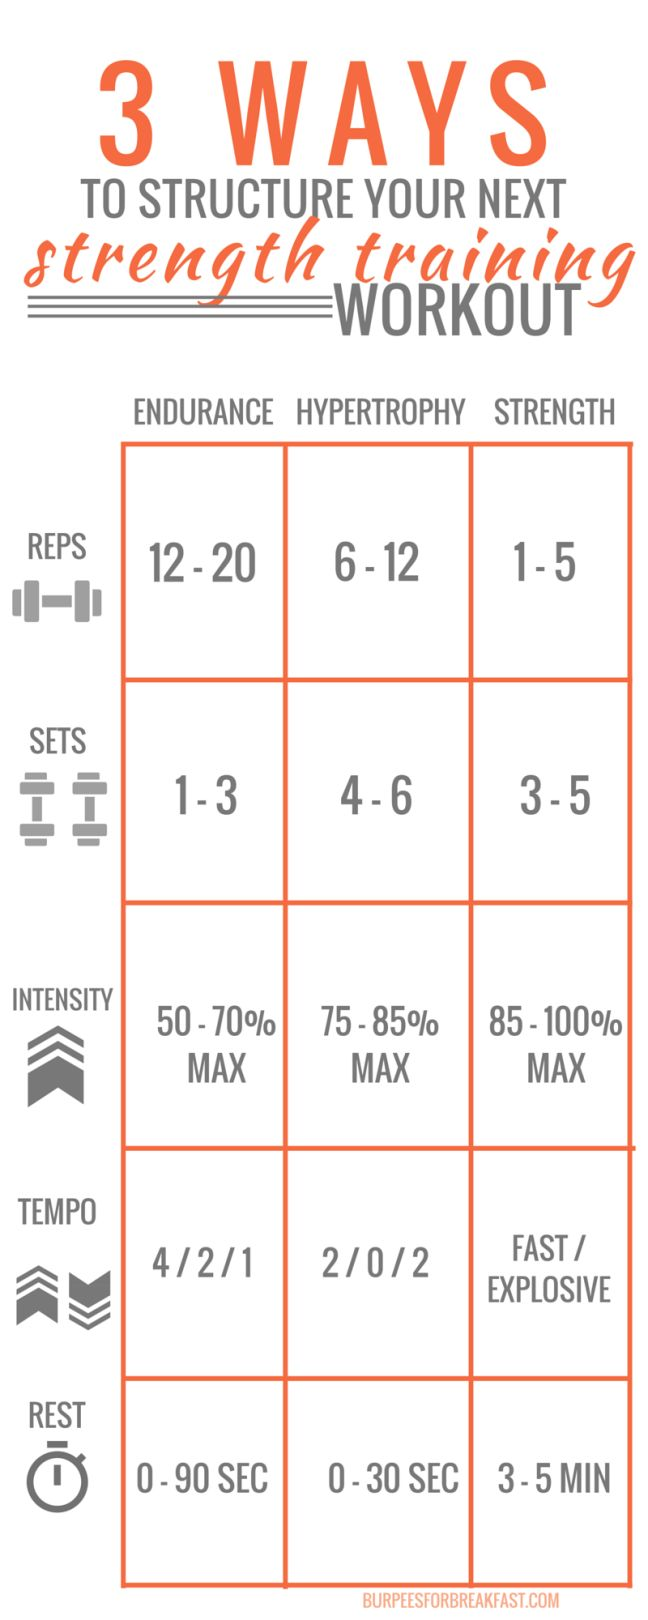 3 WAYS TO STRUCTURE YOUR NEXT STRENGTH TRAINING WORKOUT   Burpees for Breakfast